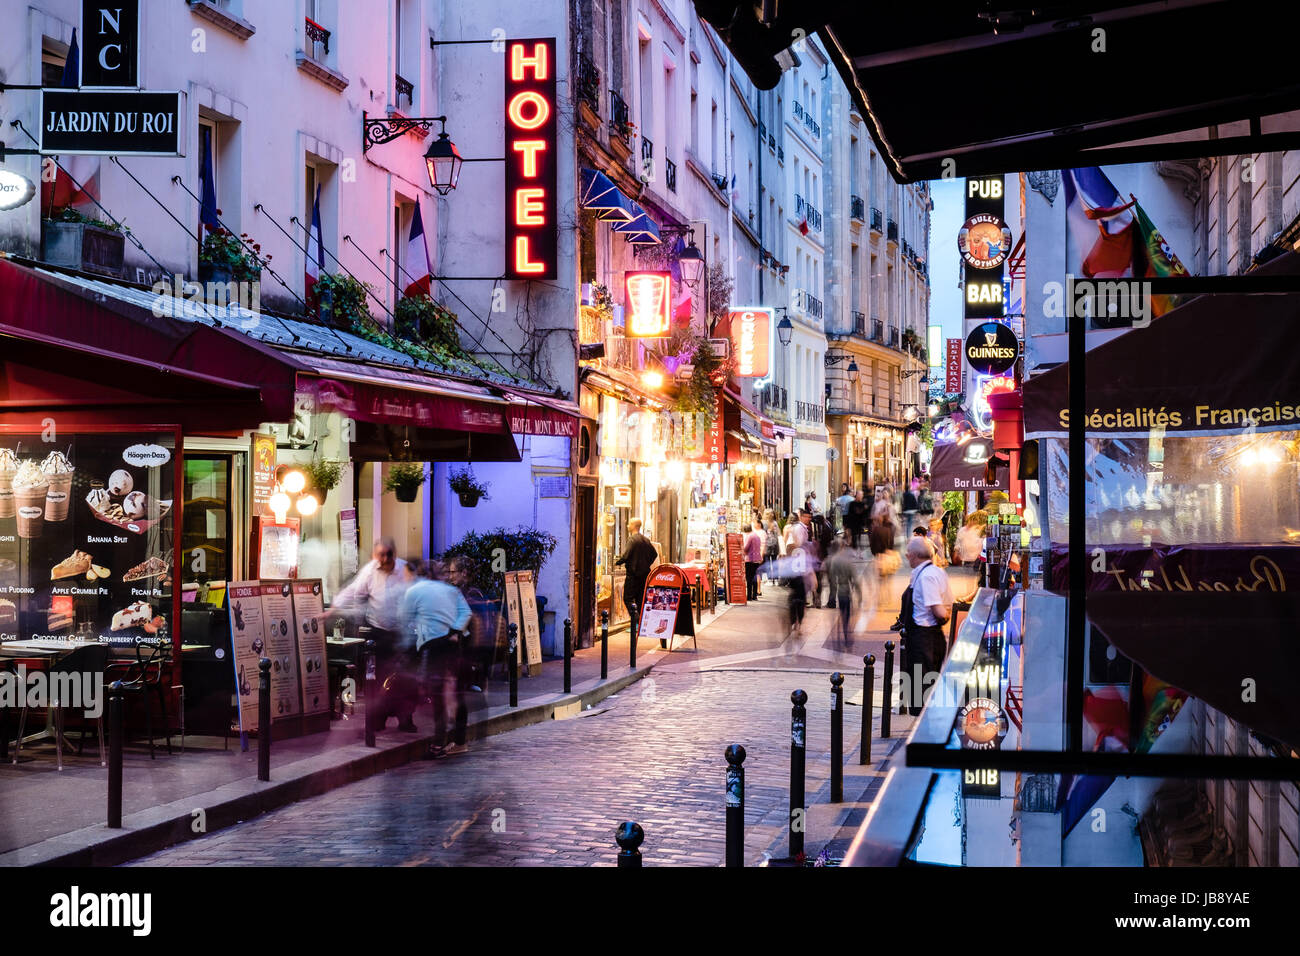 Bars and cafes at night in St Germain-des-Pres, Left Bank, Paris, France - Stock Image